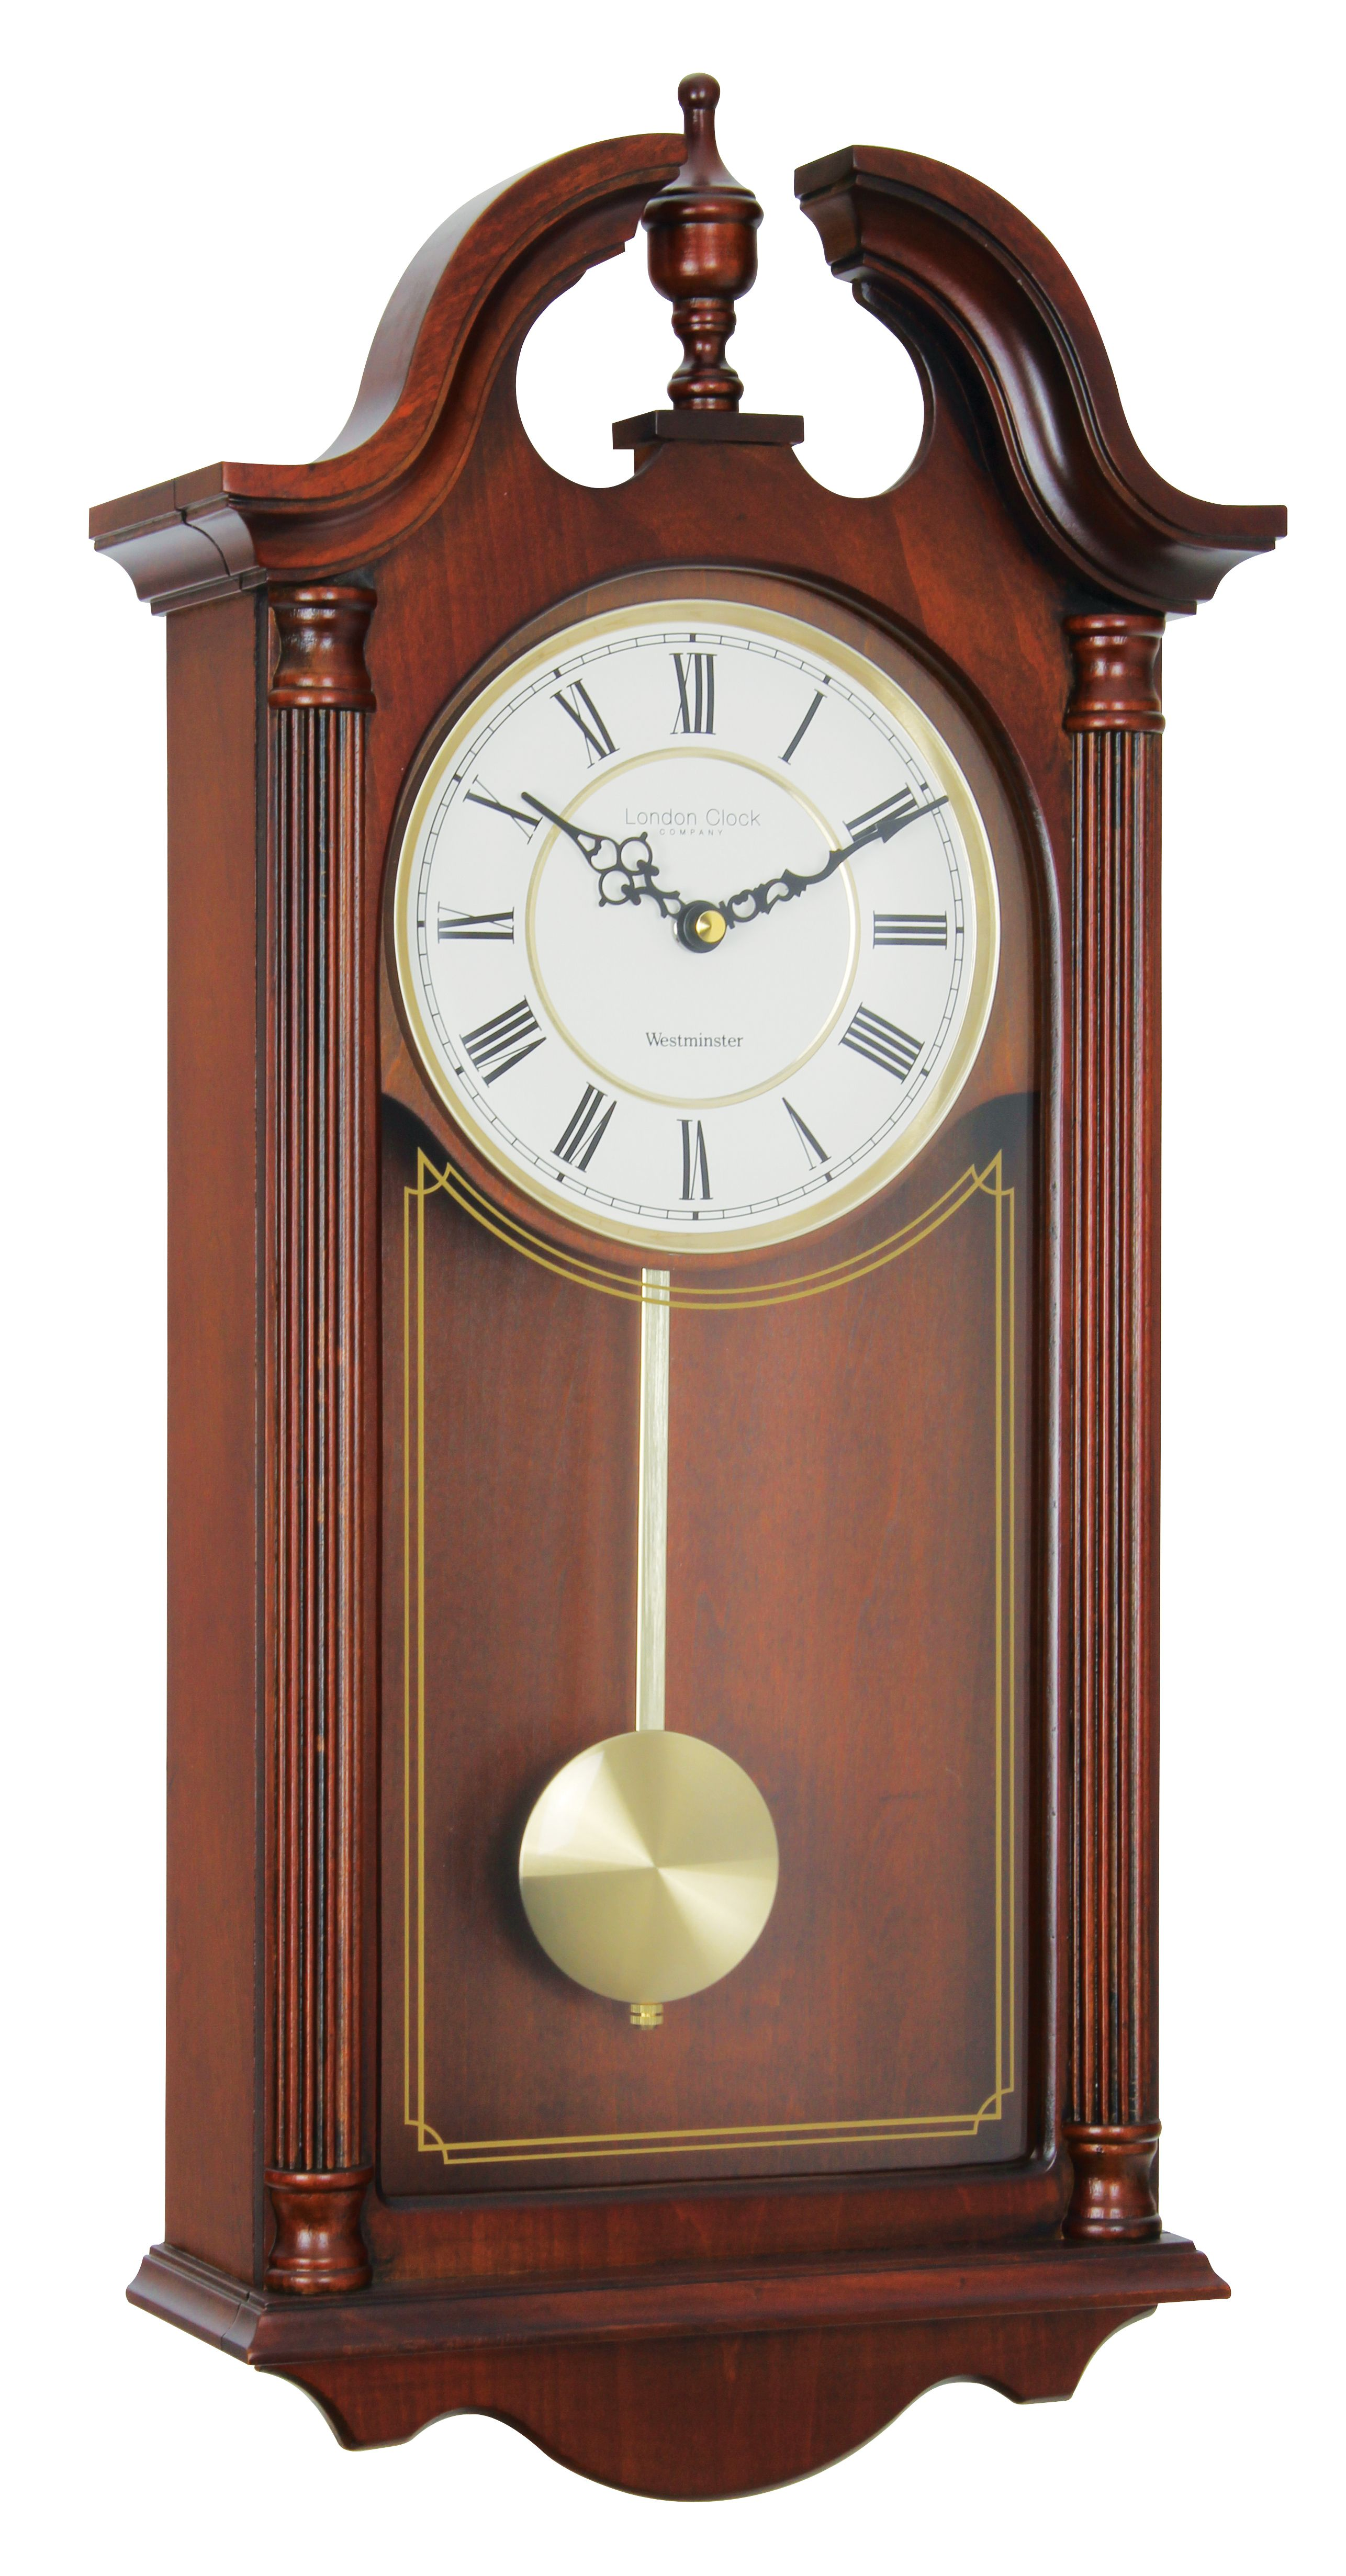 London clock company mahogany finish westminster chime pendulum clock kit pendulum battery quartz movement w 3 pairs of hands description amipublicfo Images